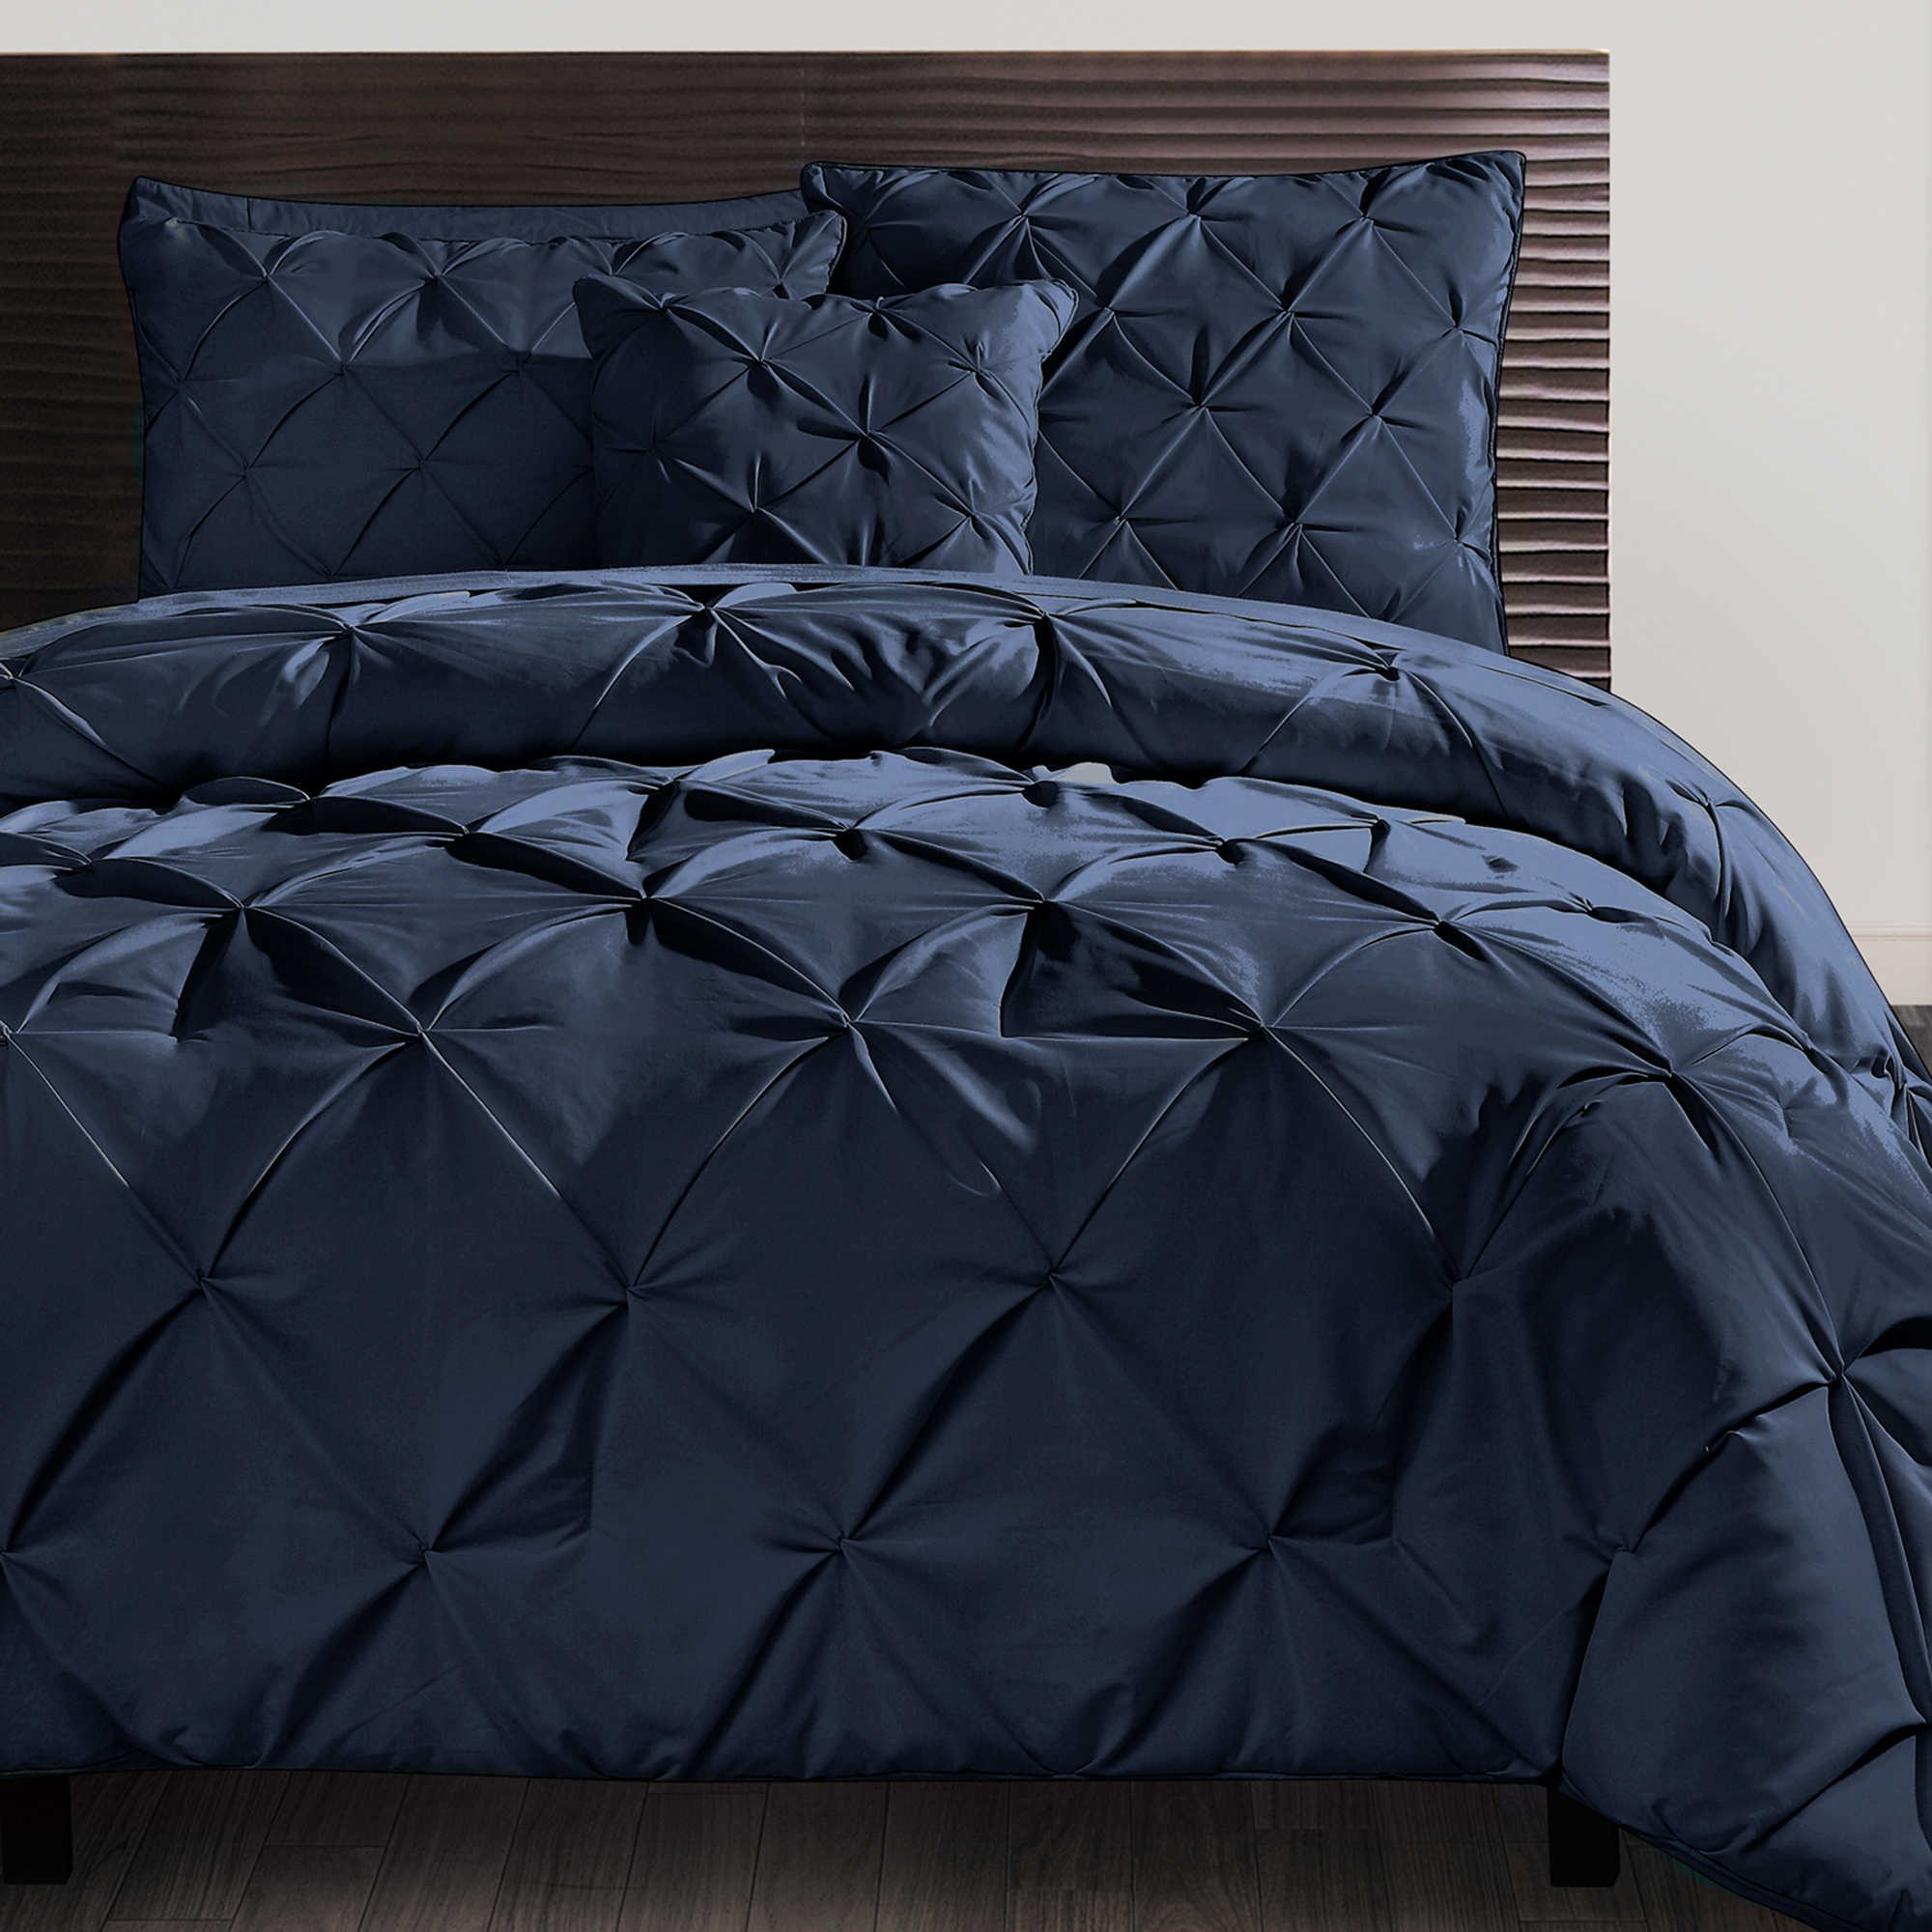 cover duvet cotton piece product solid pinched pinch comforter set navy pleat size king bedding blue